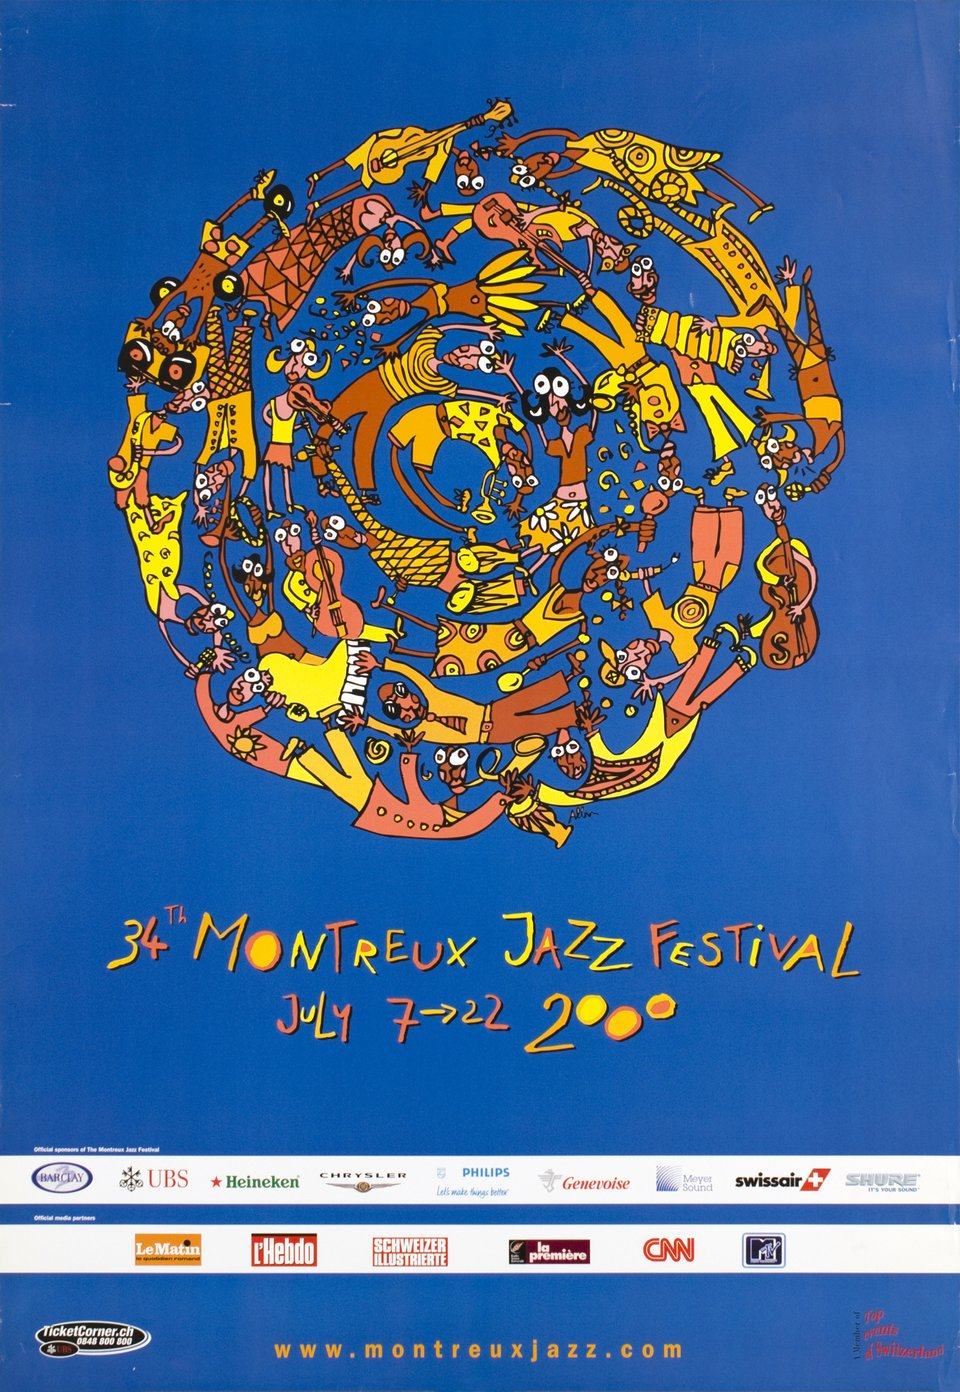 34th Montreux Jazz Festival, July 2000 – Vintage poster – Albin CHRISTEN – 2000